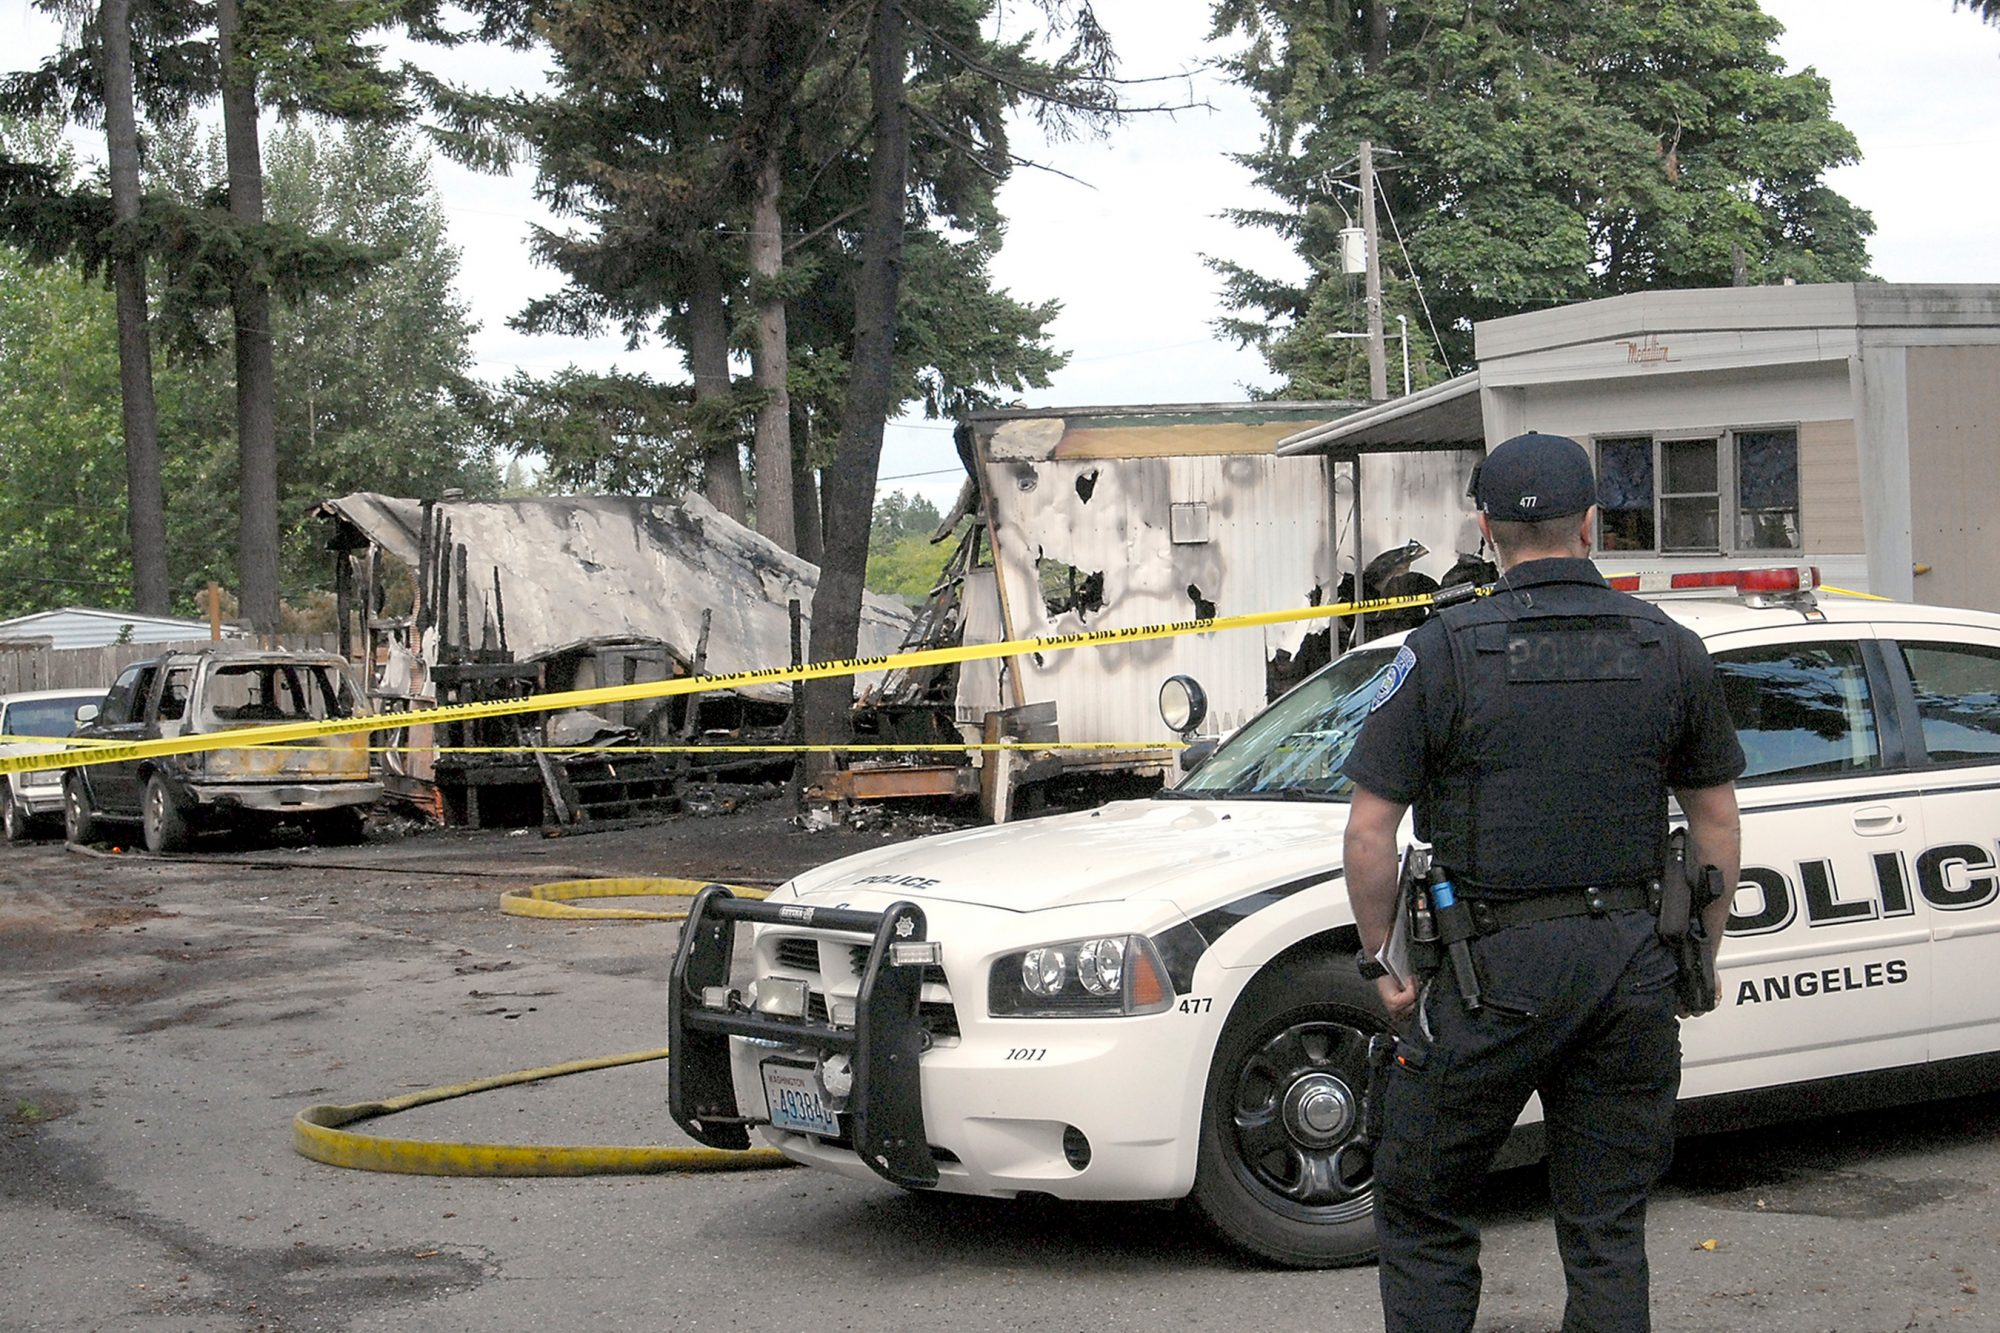 Port Angeles police Officer T.J. Mueller looks over the scene of a fire that destroyed two mobile homes and left several dead early Saturday, July 6, 2019, at the Welcome Inn RV Park in Port Angeles, Wash